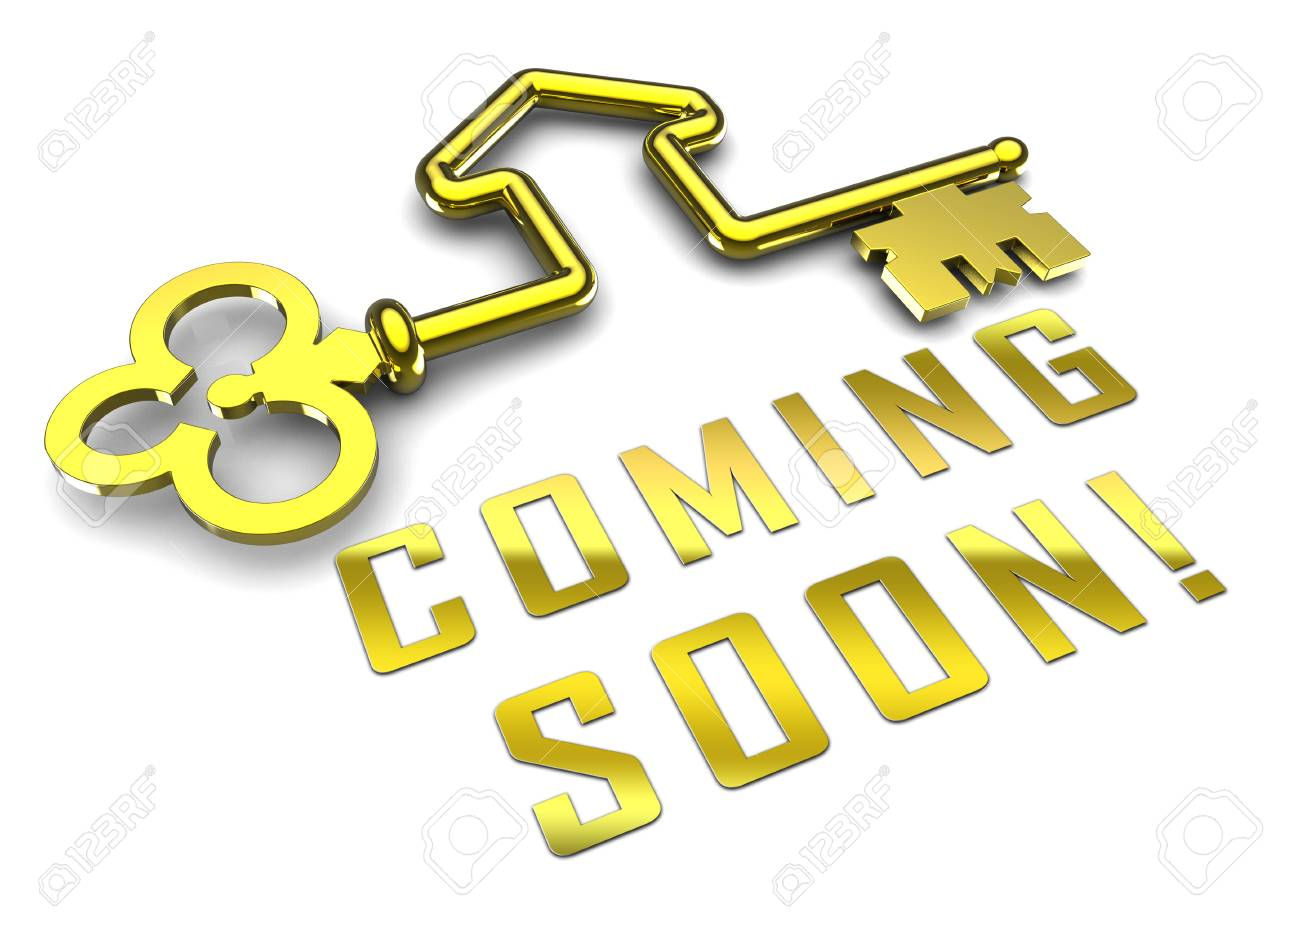 Coming Soon Key Shows Upcoming Real Estate Property Available. Realty Ownership Project Upcoming - 3d Illustration - 119299009